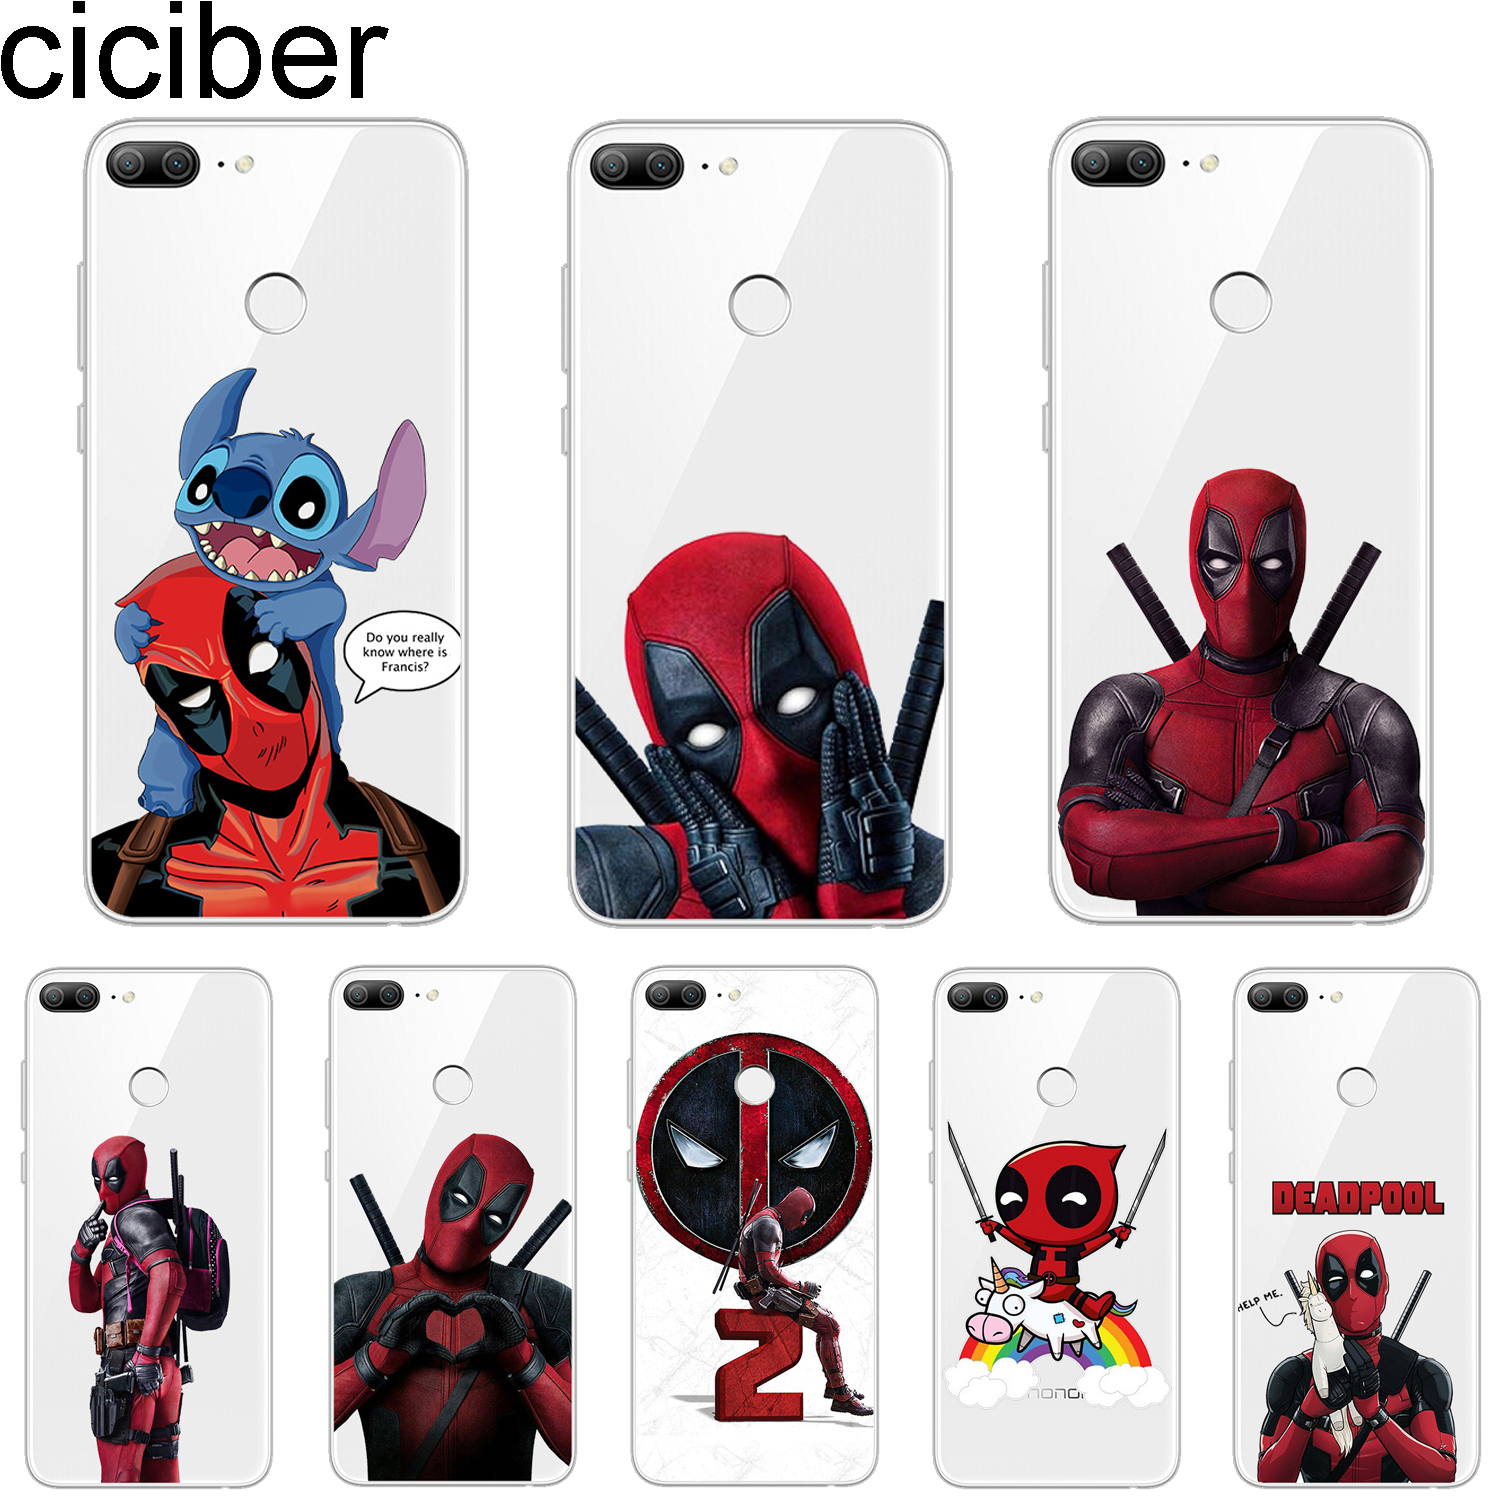 ciciber Cover For Honor 9 10 Lite 7A 8X 8C Pro Lite Play V10 Phone Cases Marvel Deadpool Shell Capa Fundas Soft Silicone TPU image